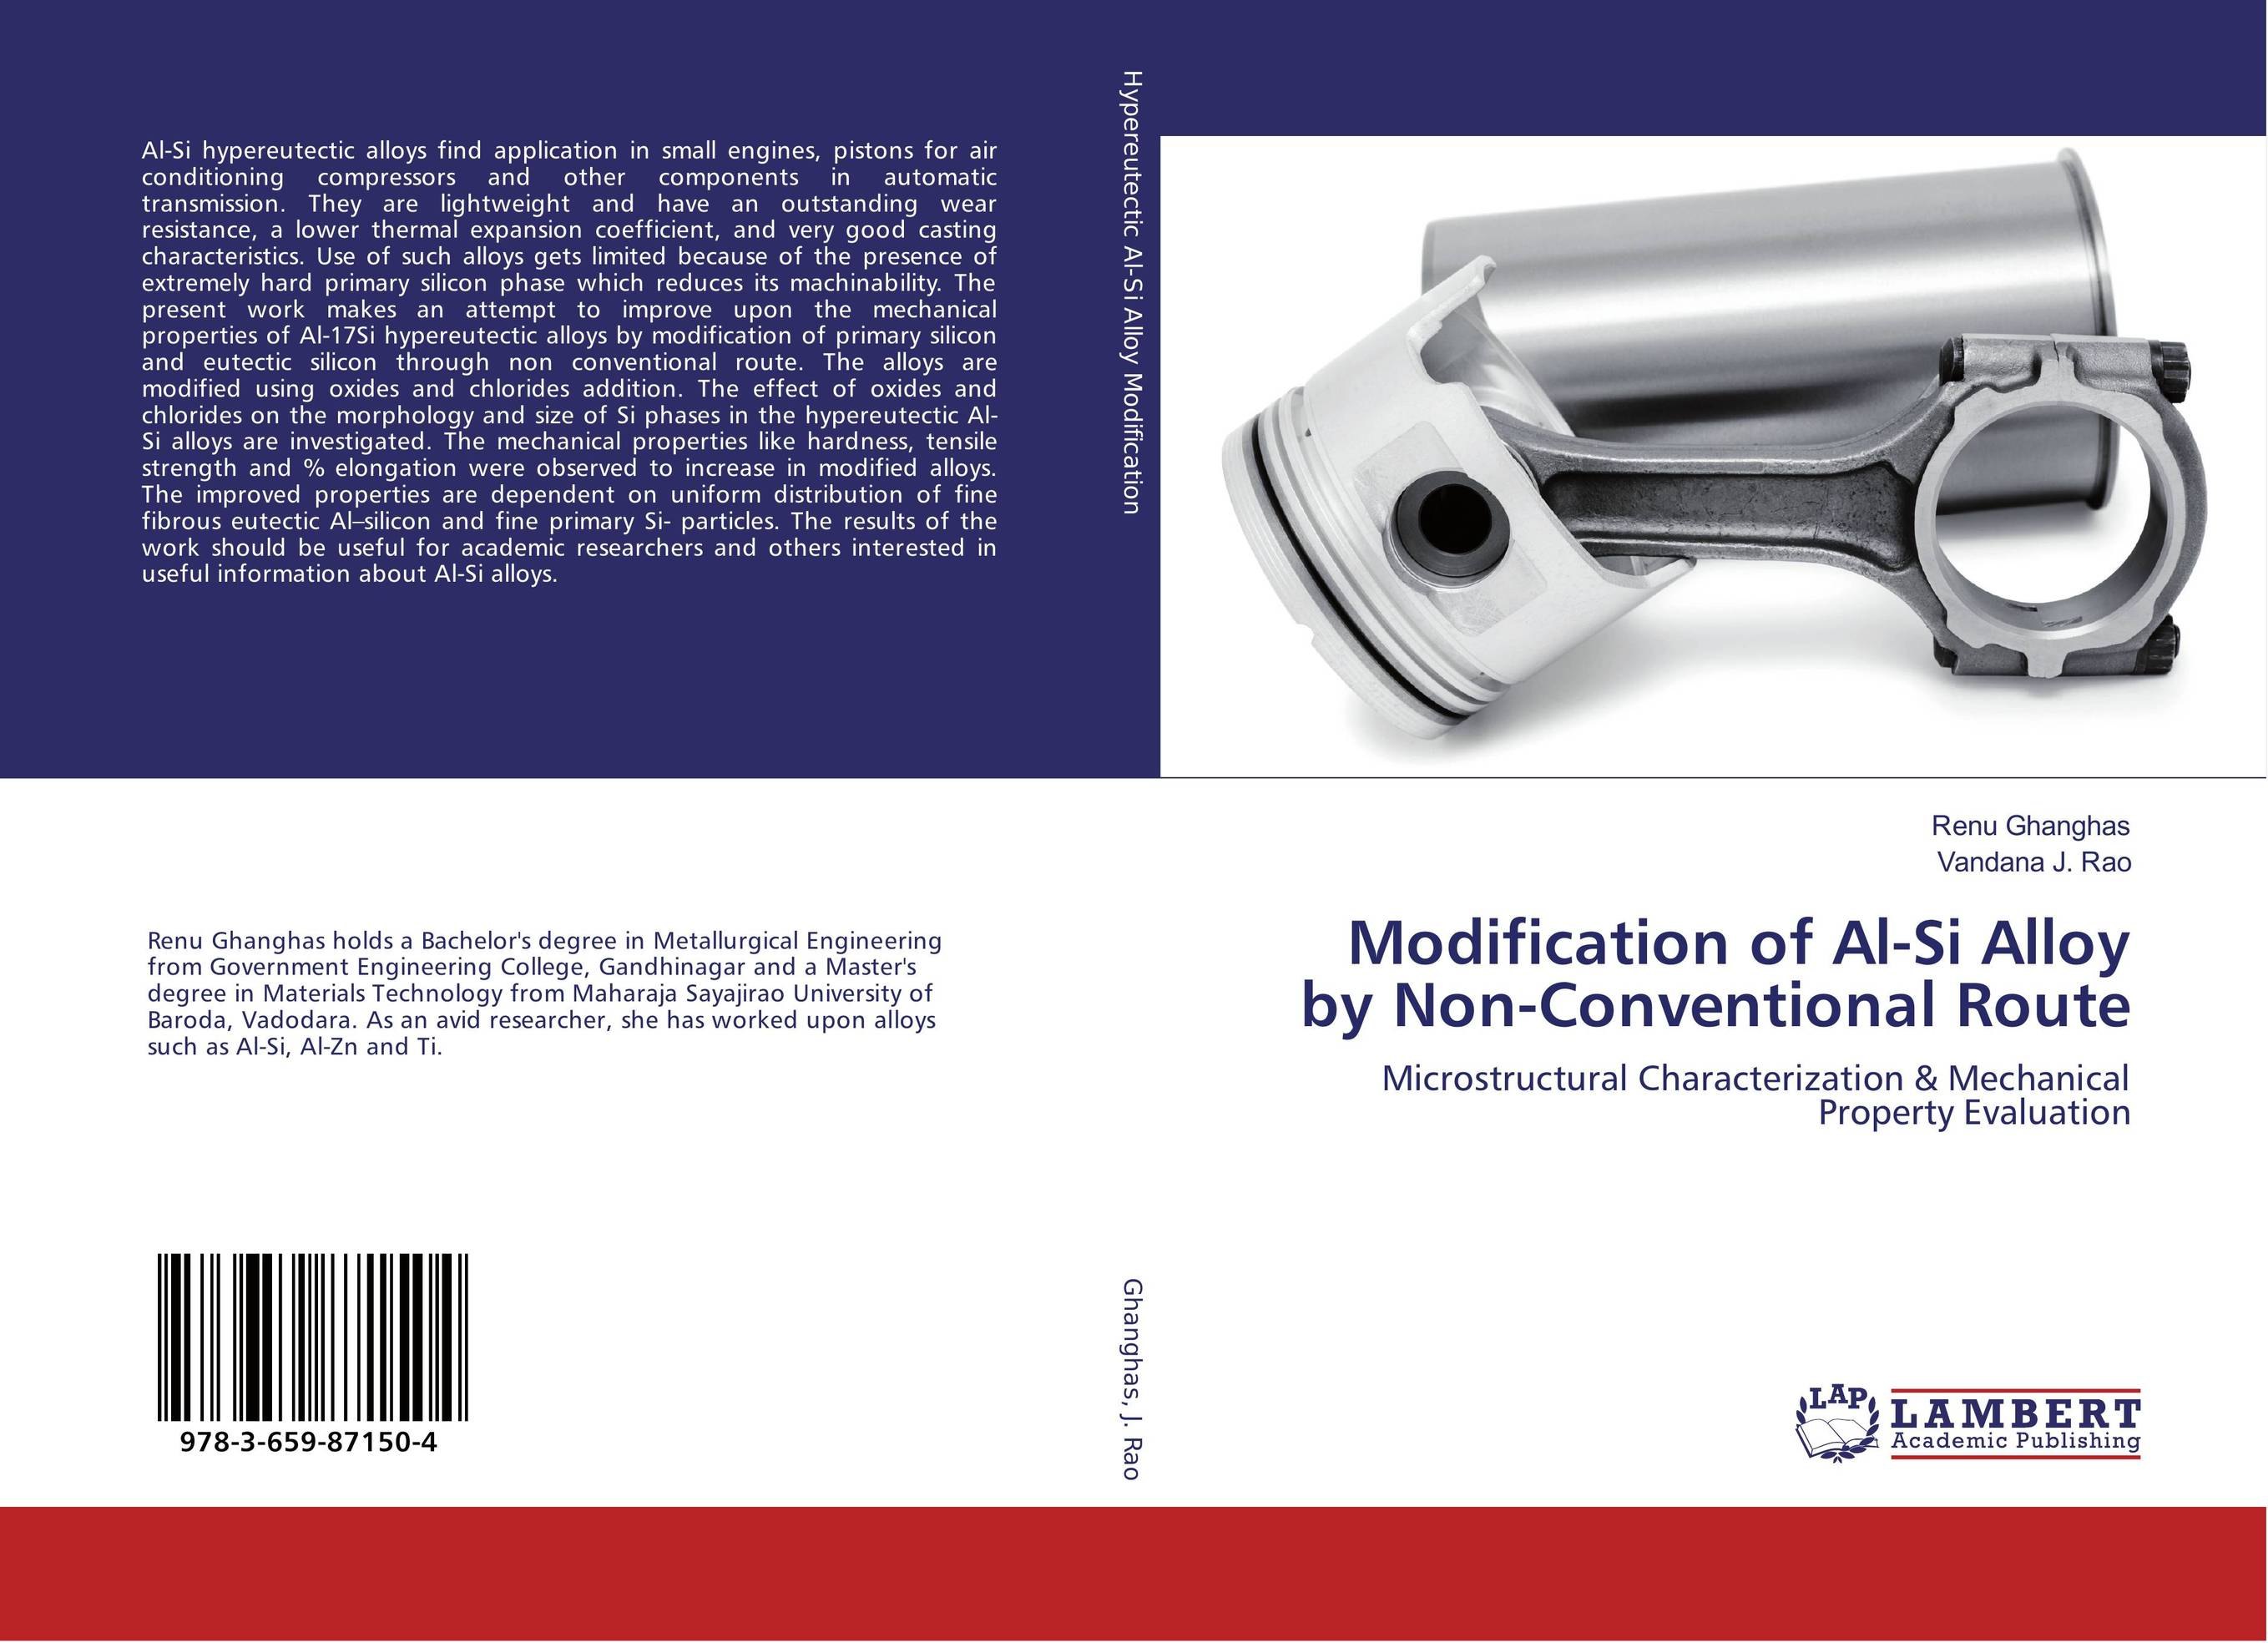 Modification of Al-Si Alloy by Non-Conventional Route